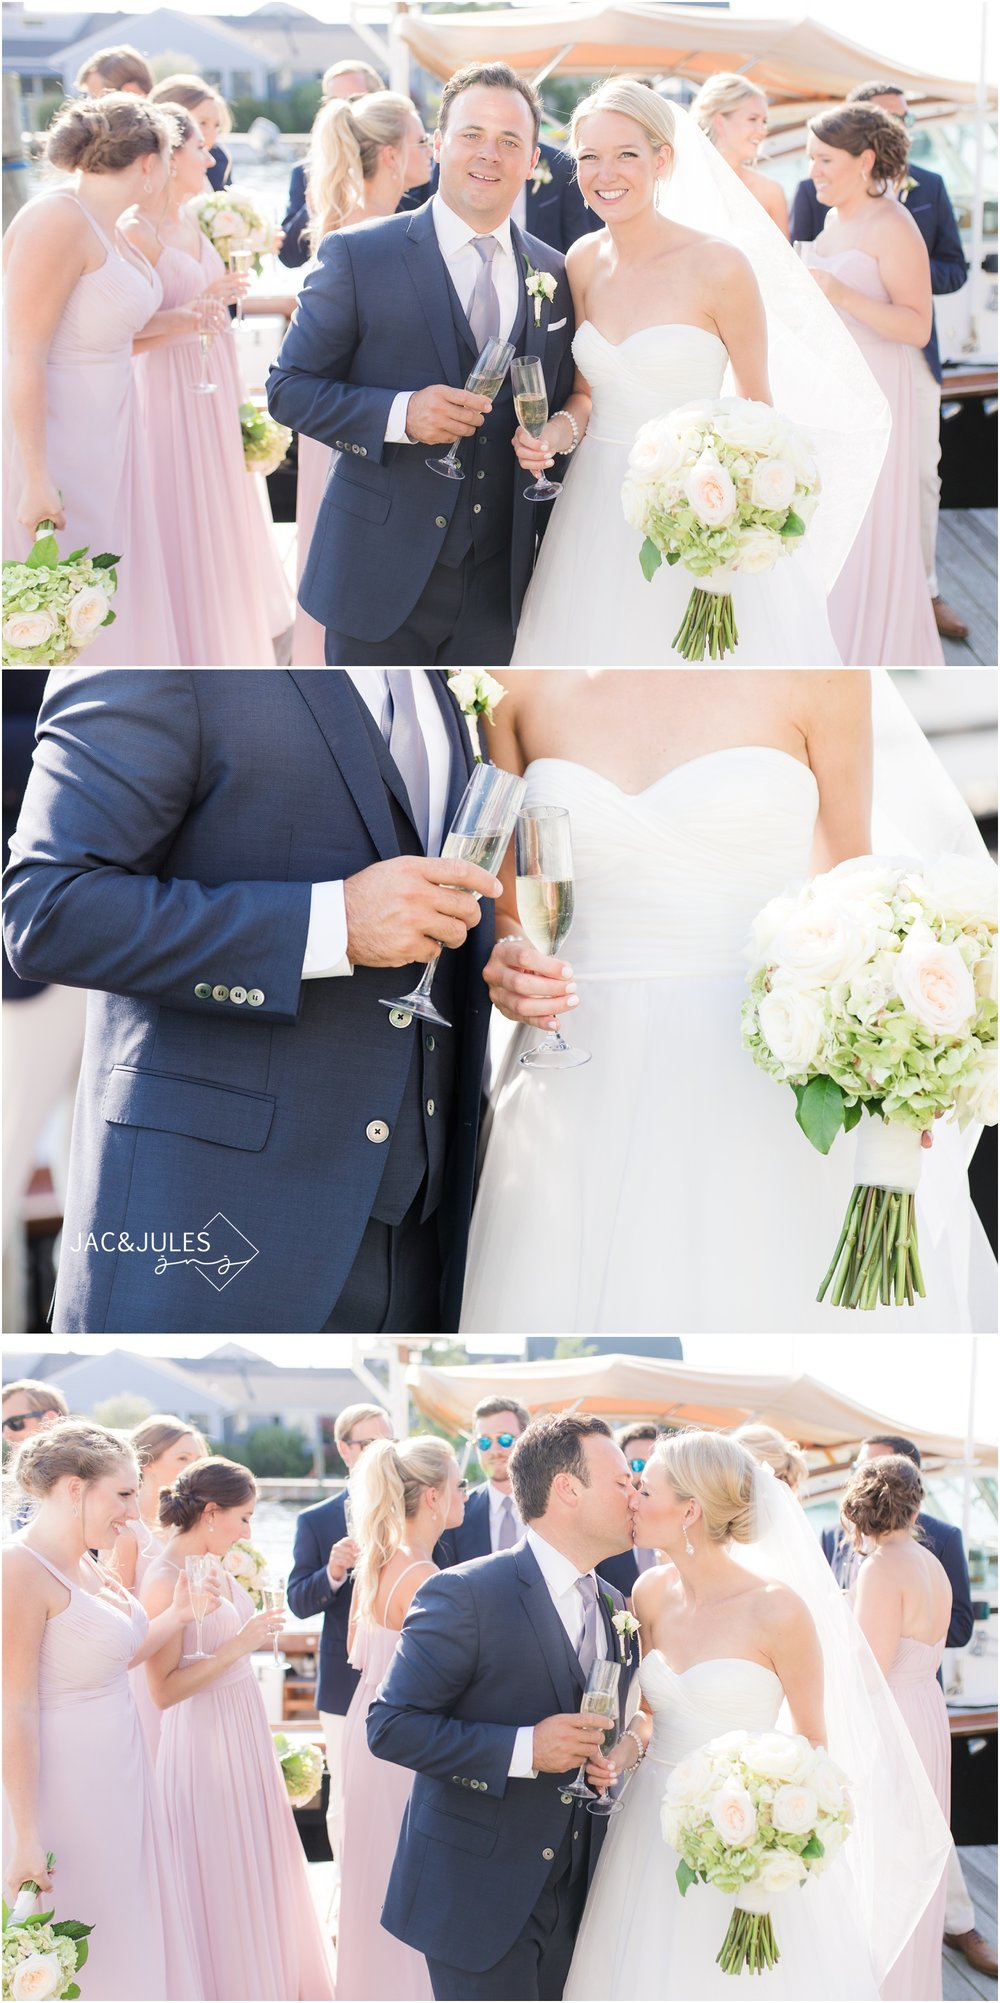 Newlywed toast photos on the dock in Bay Head, NJ.